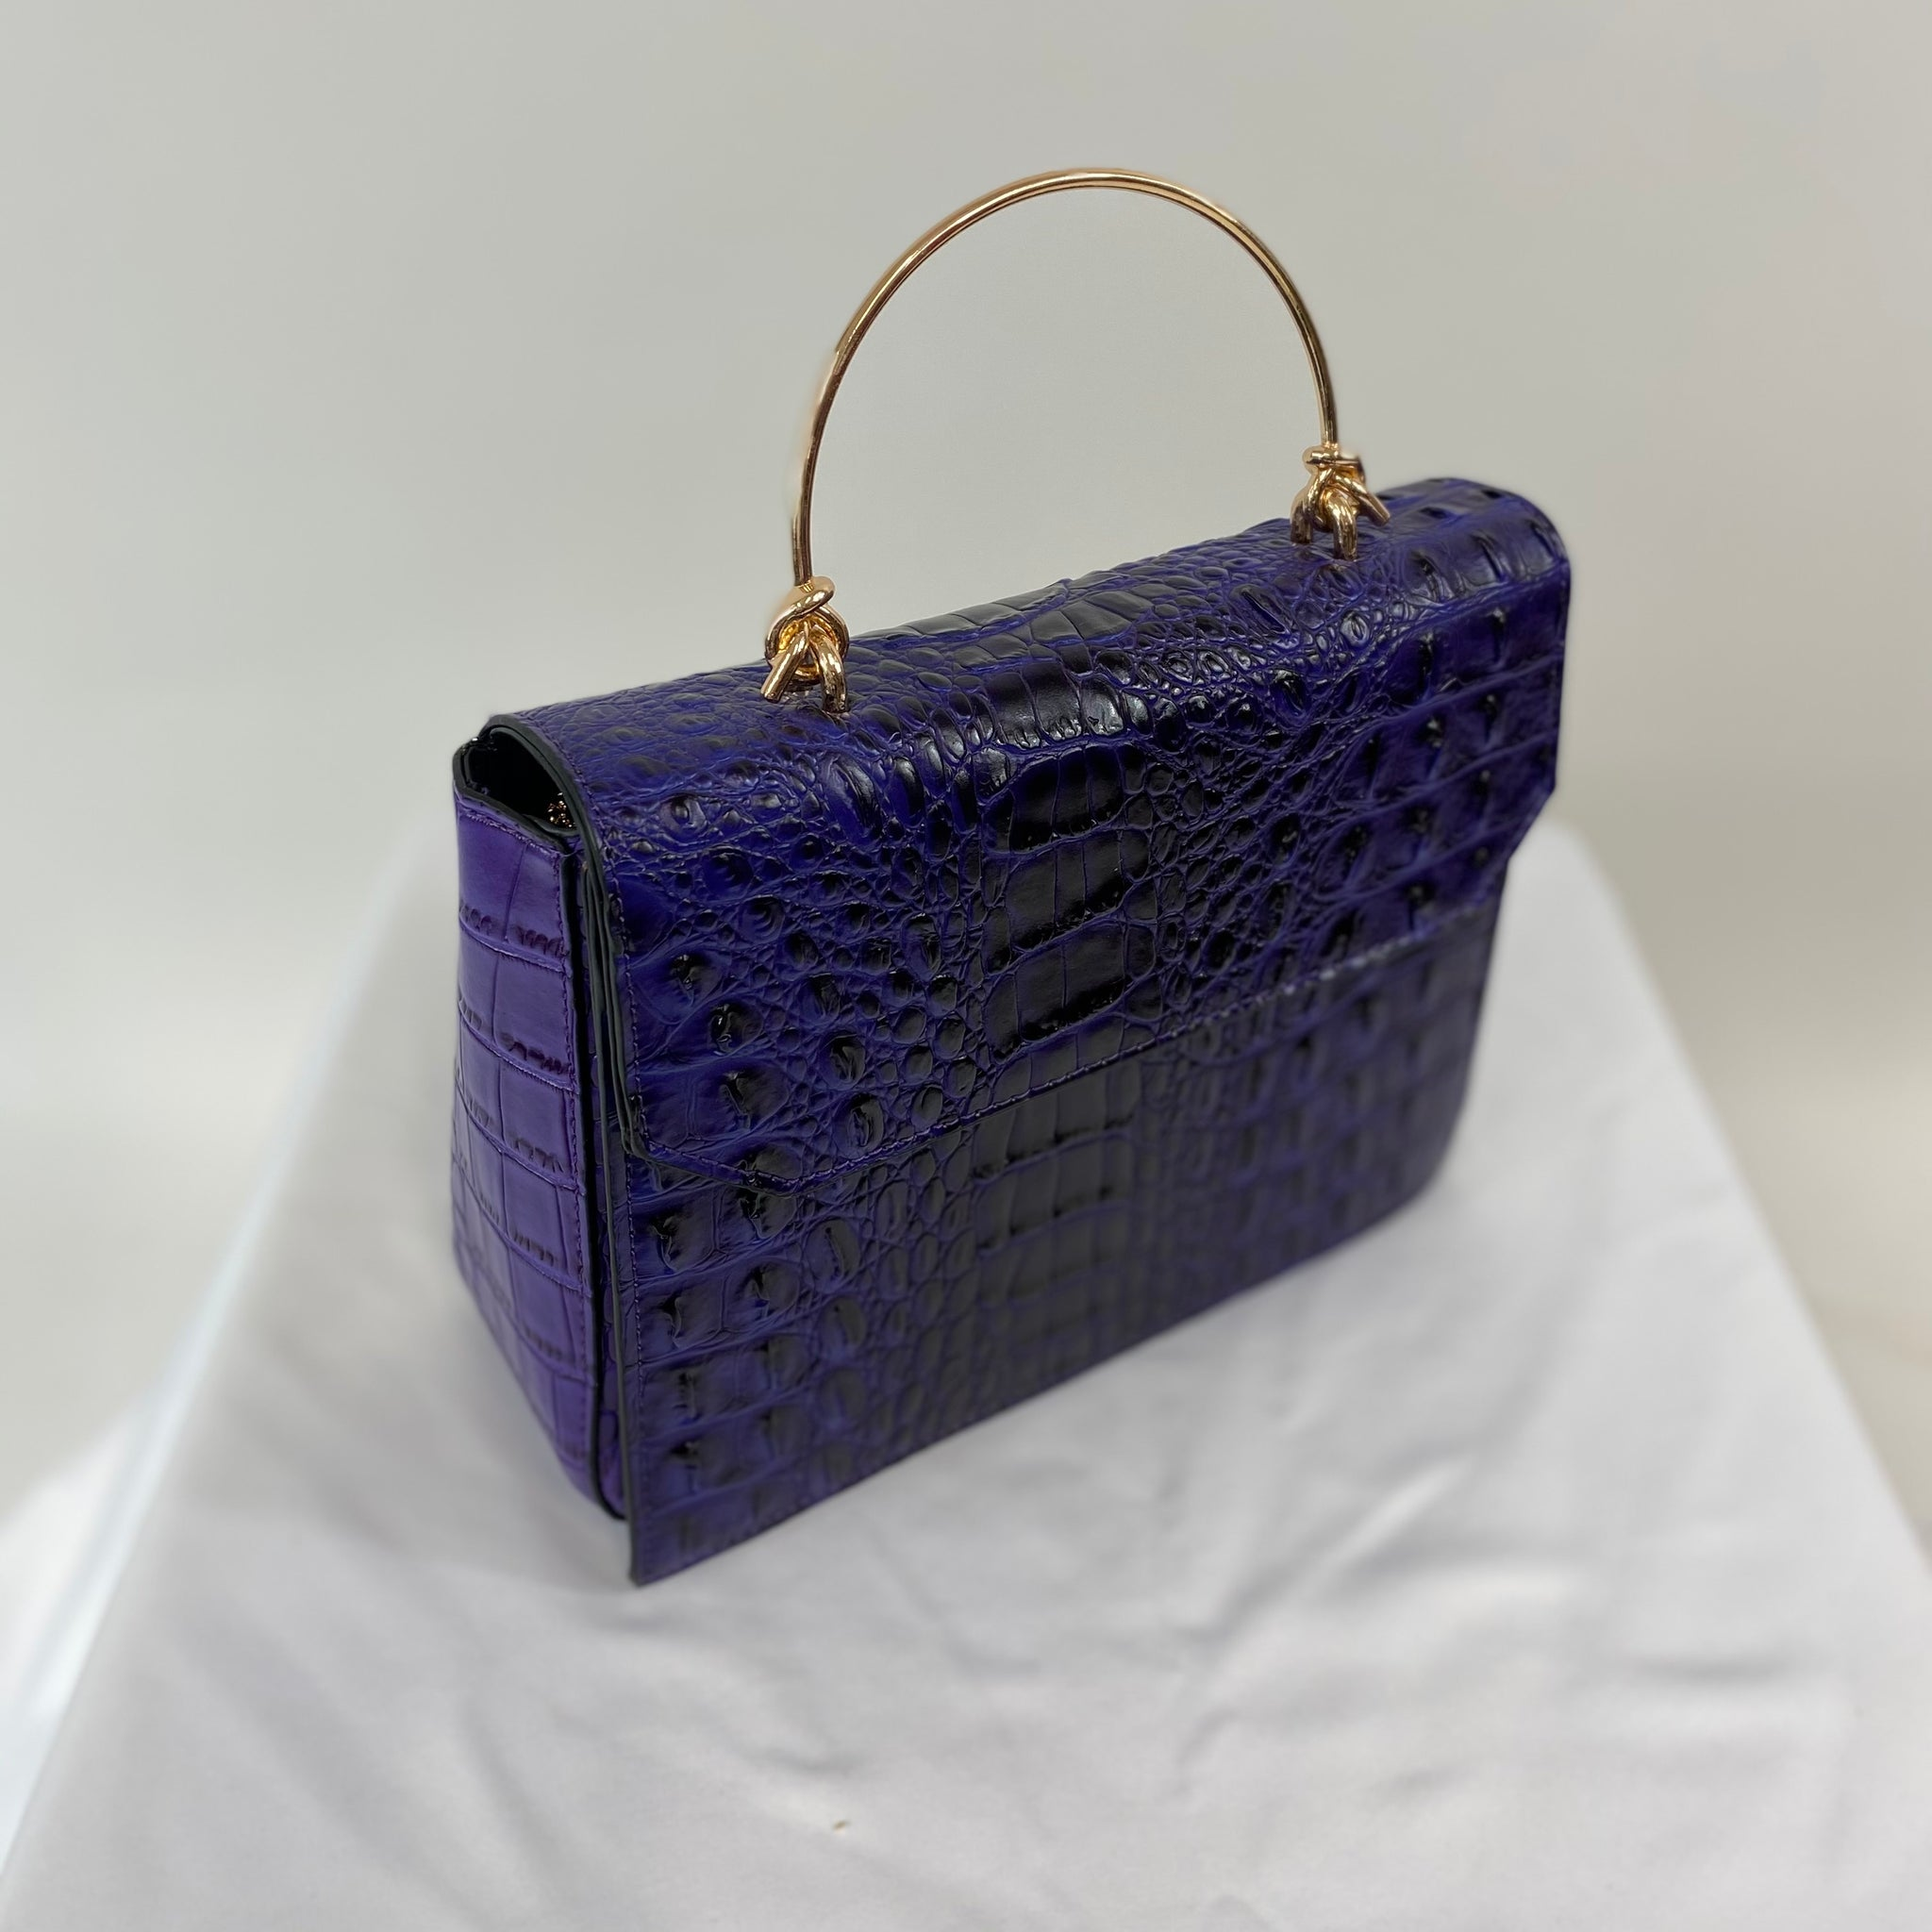 Classic Clara Handbag in Deep Purple - Vintage Inspired